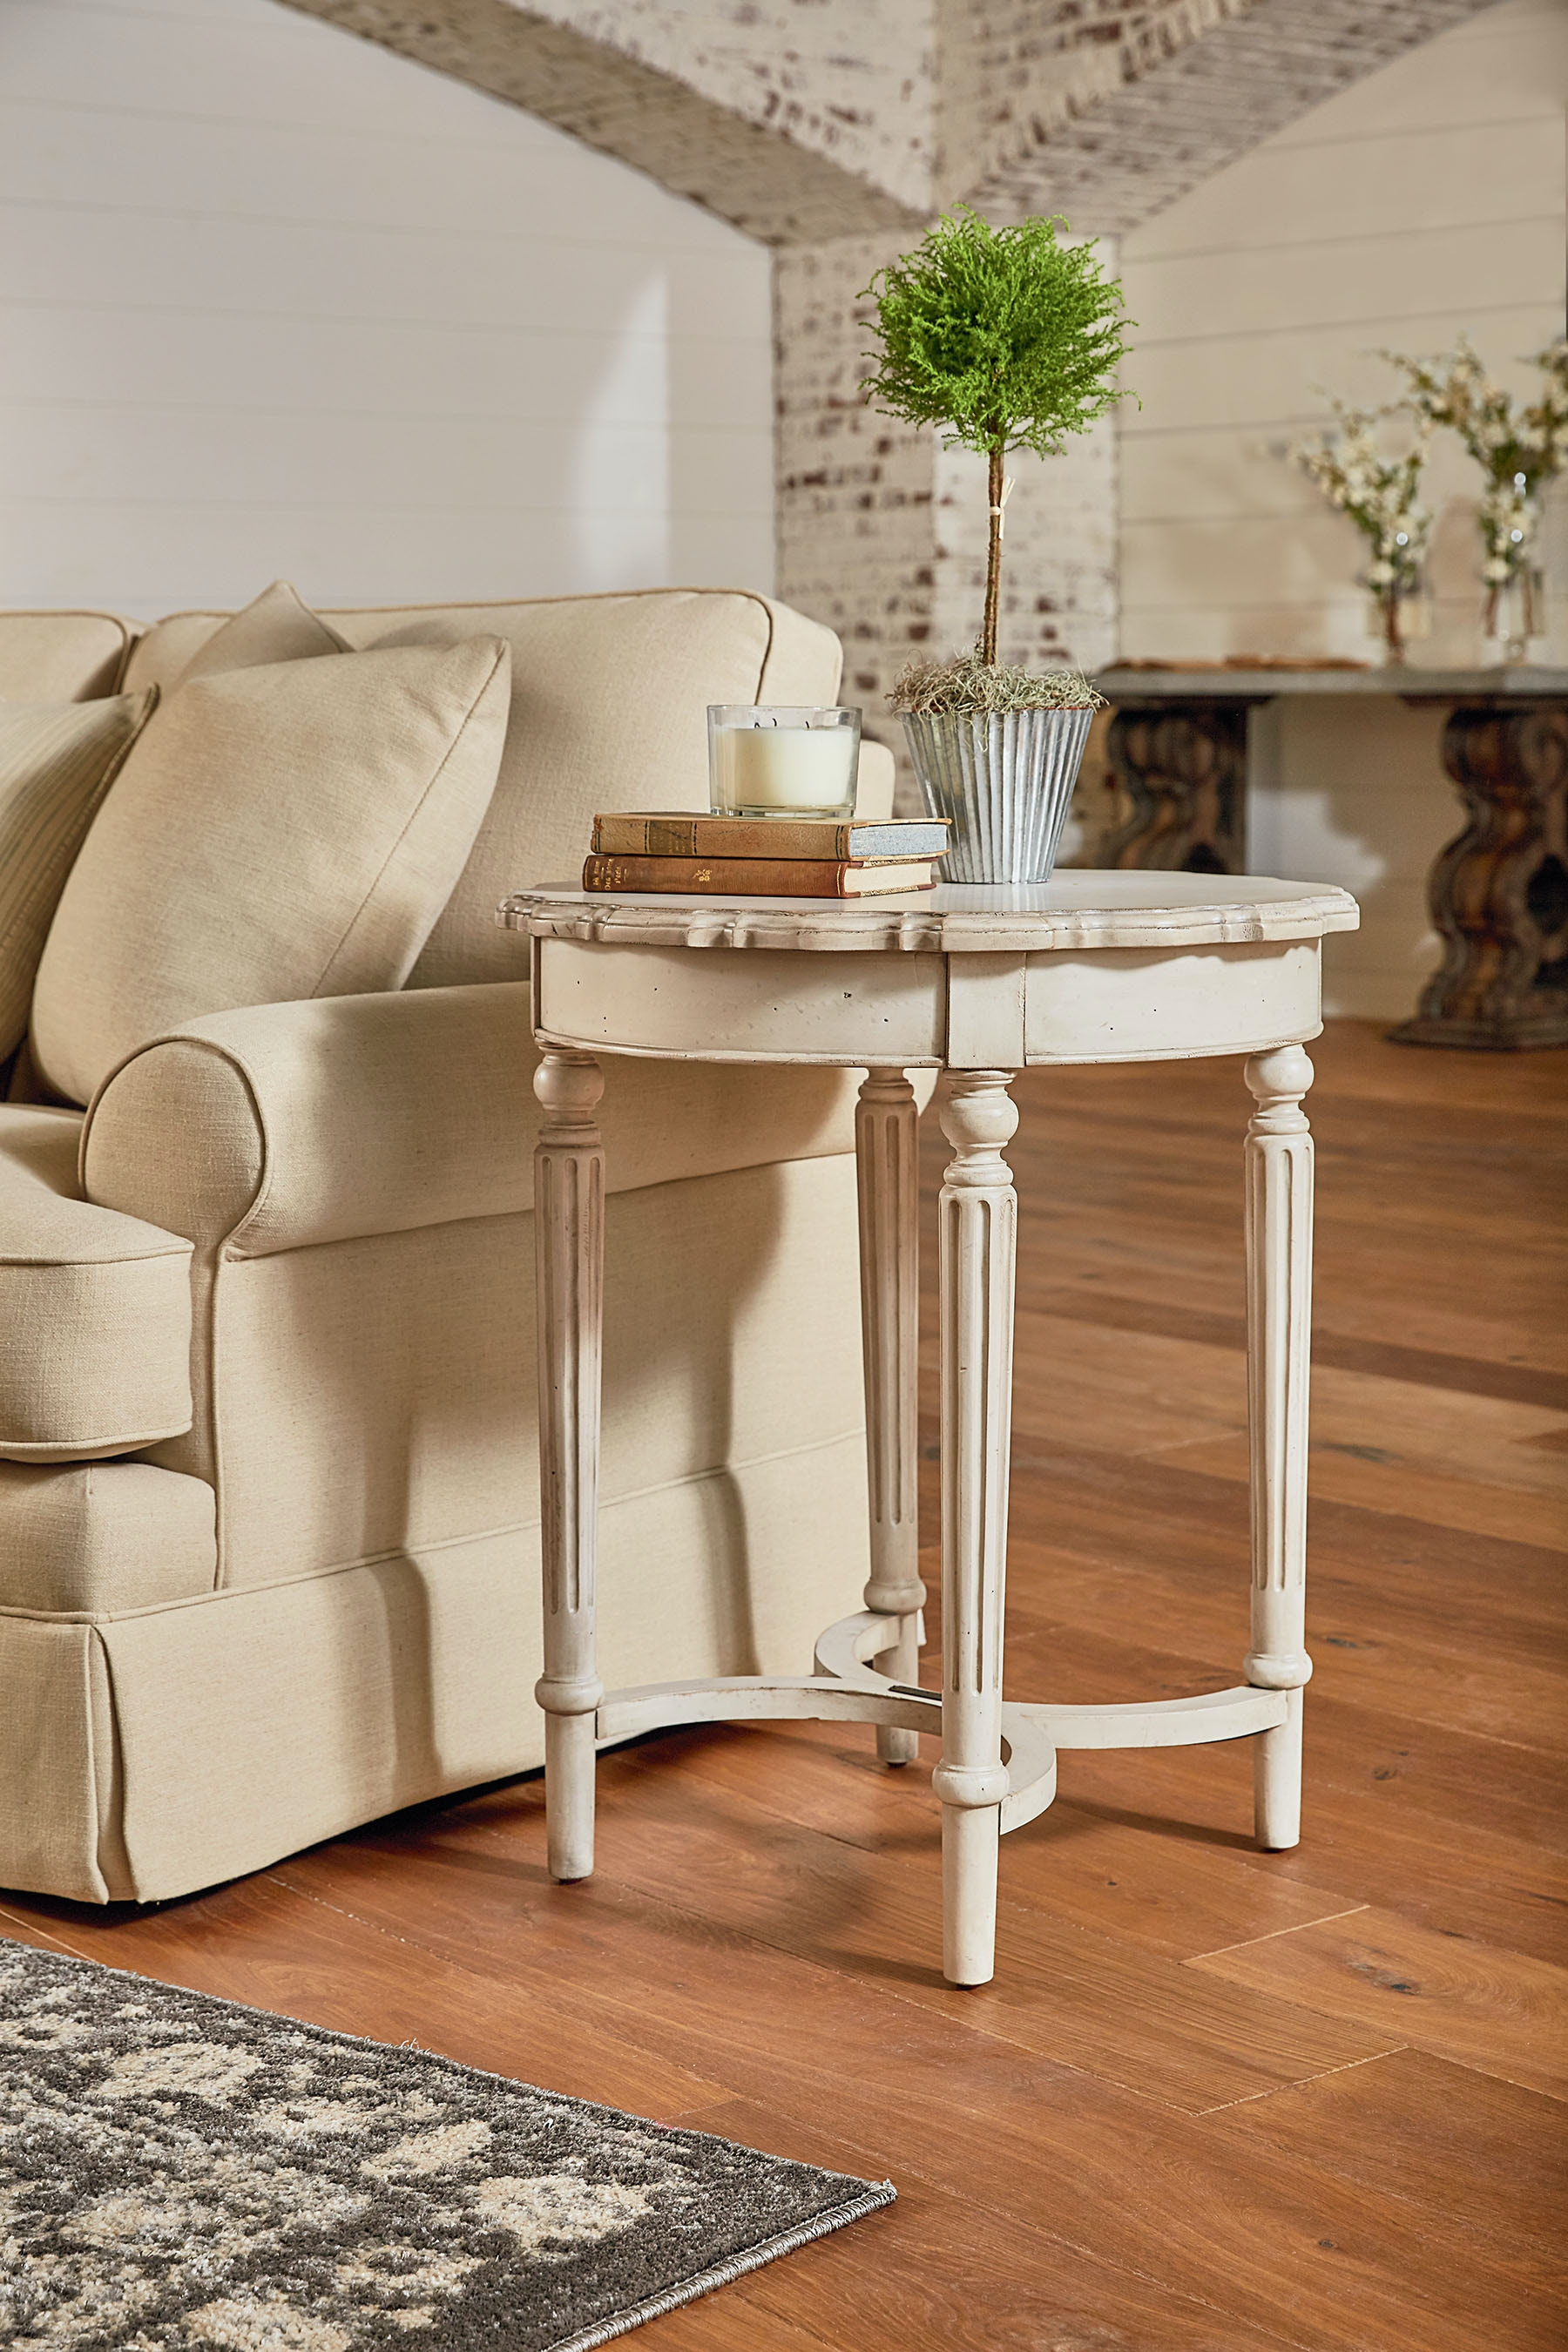 Magnolia Home Living Room French Inspired Tall Pie Crust